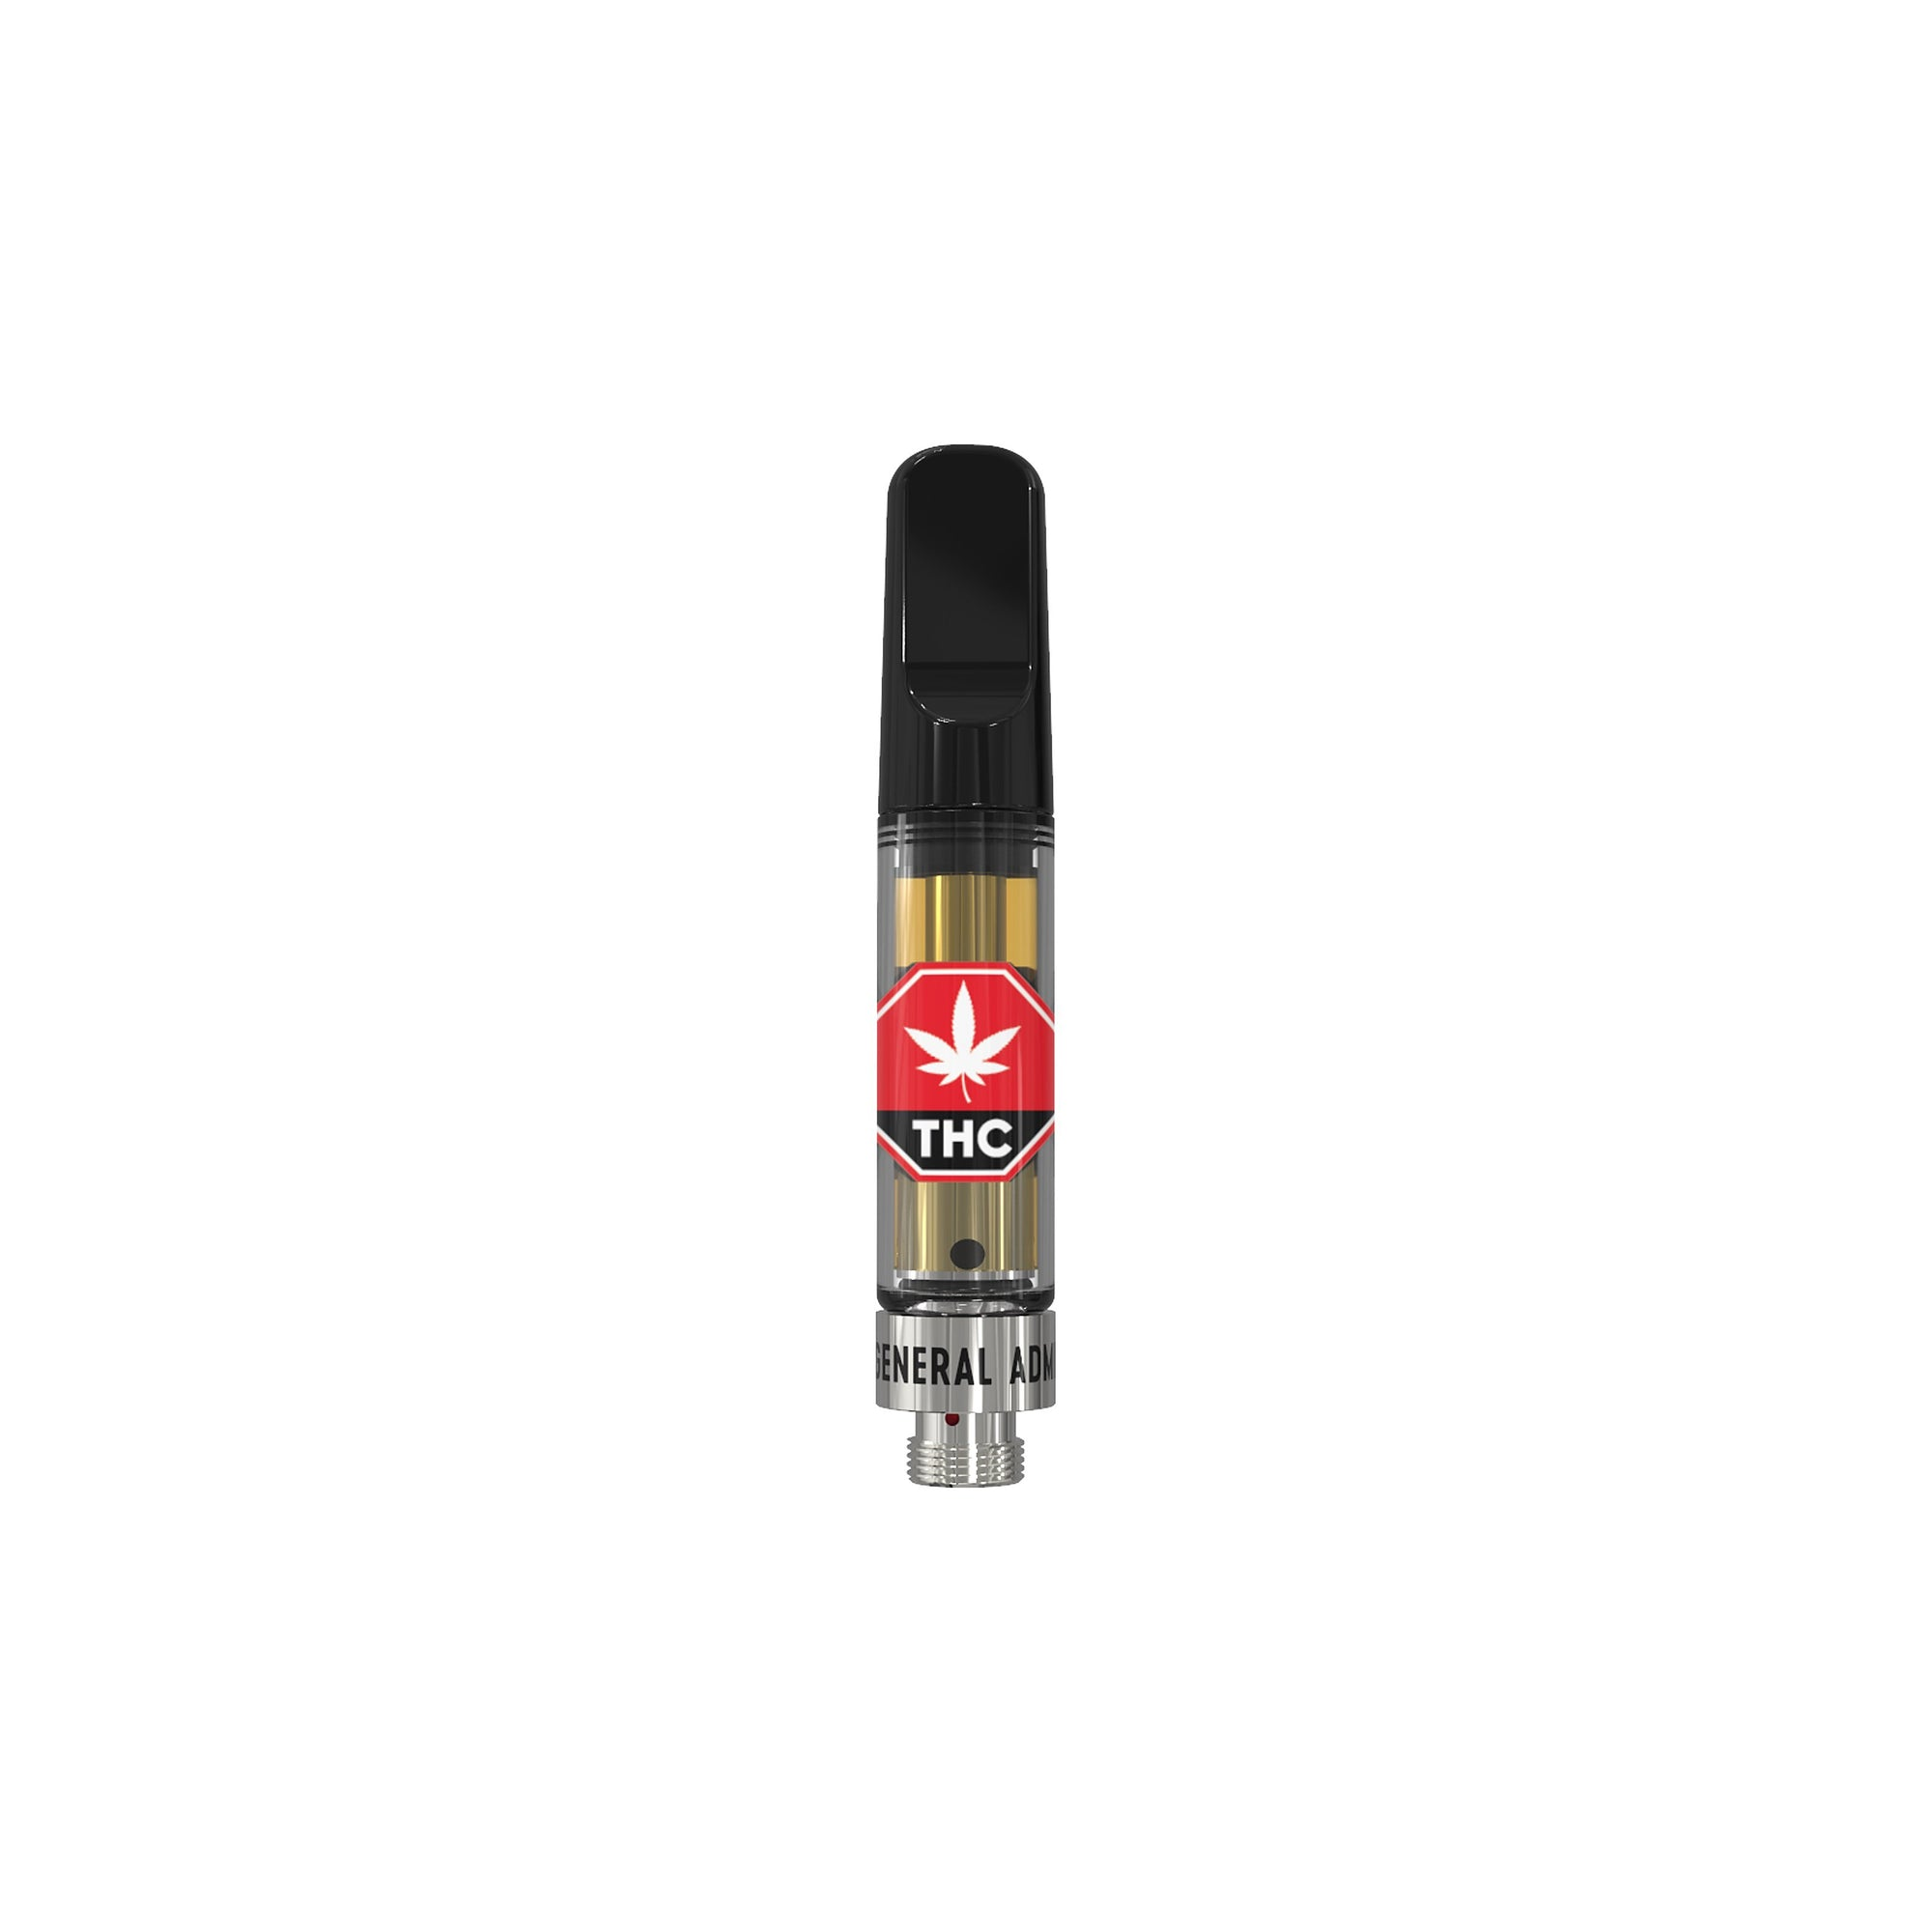 Grapefruit Kush Indica Cartridge